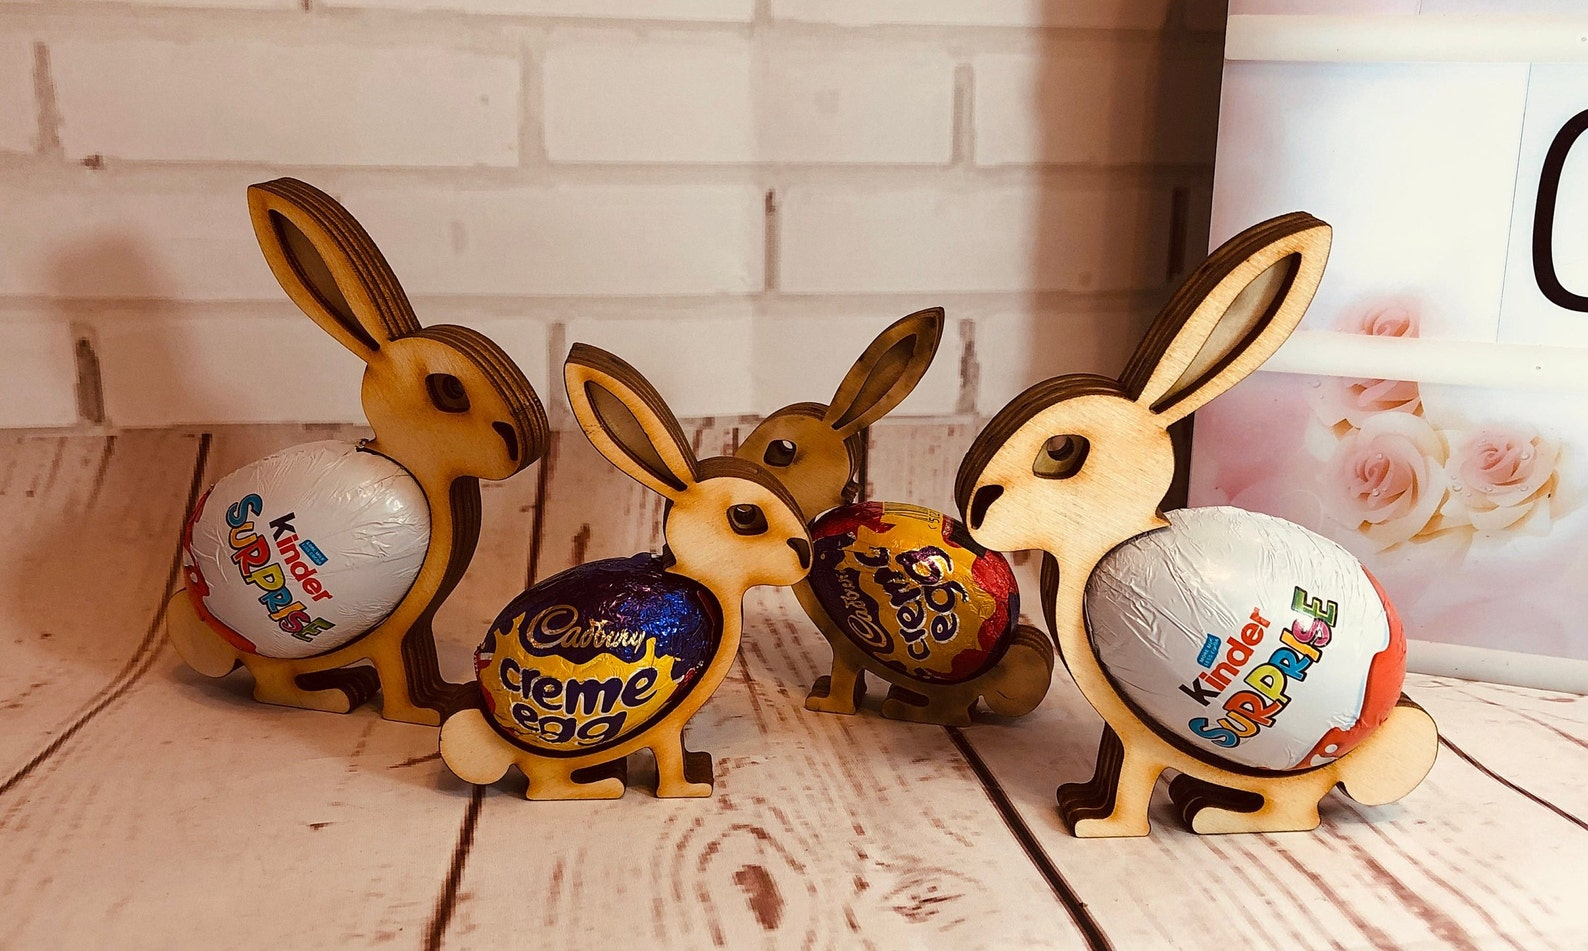 Easter Bunny Kinder Suprise Cream egg holder